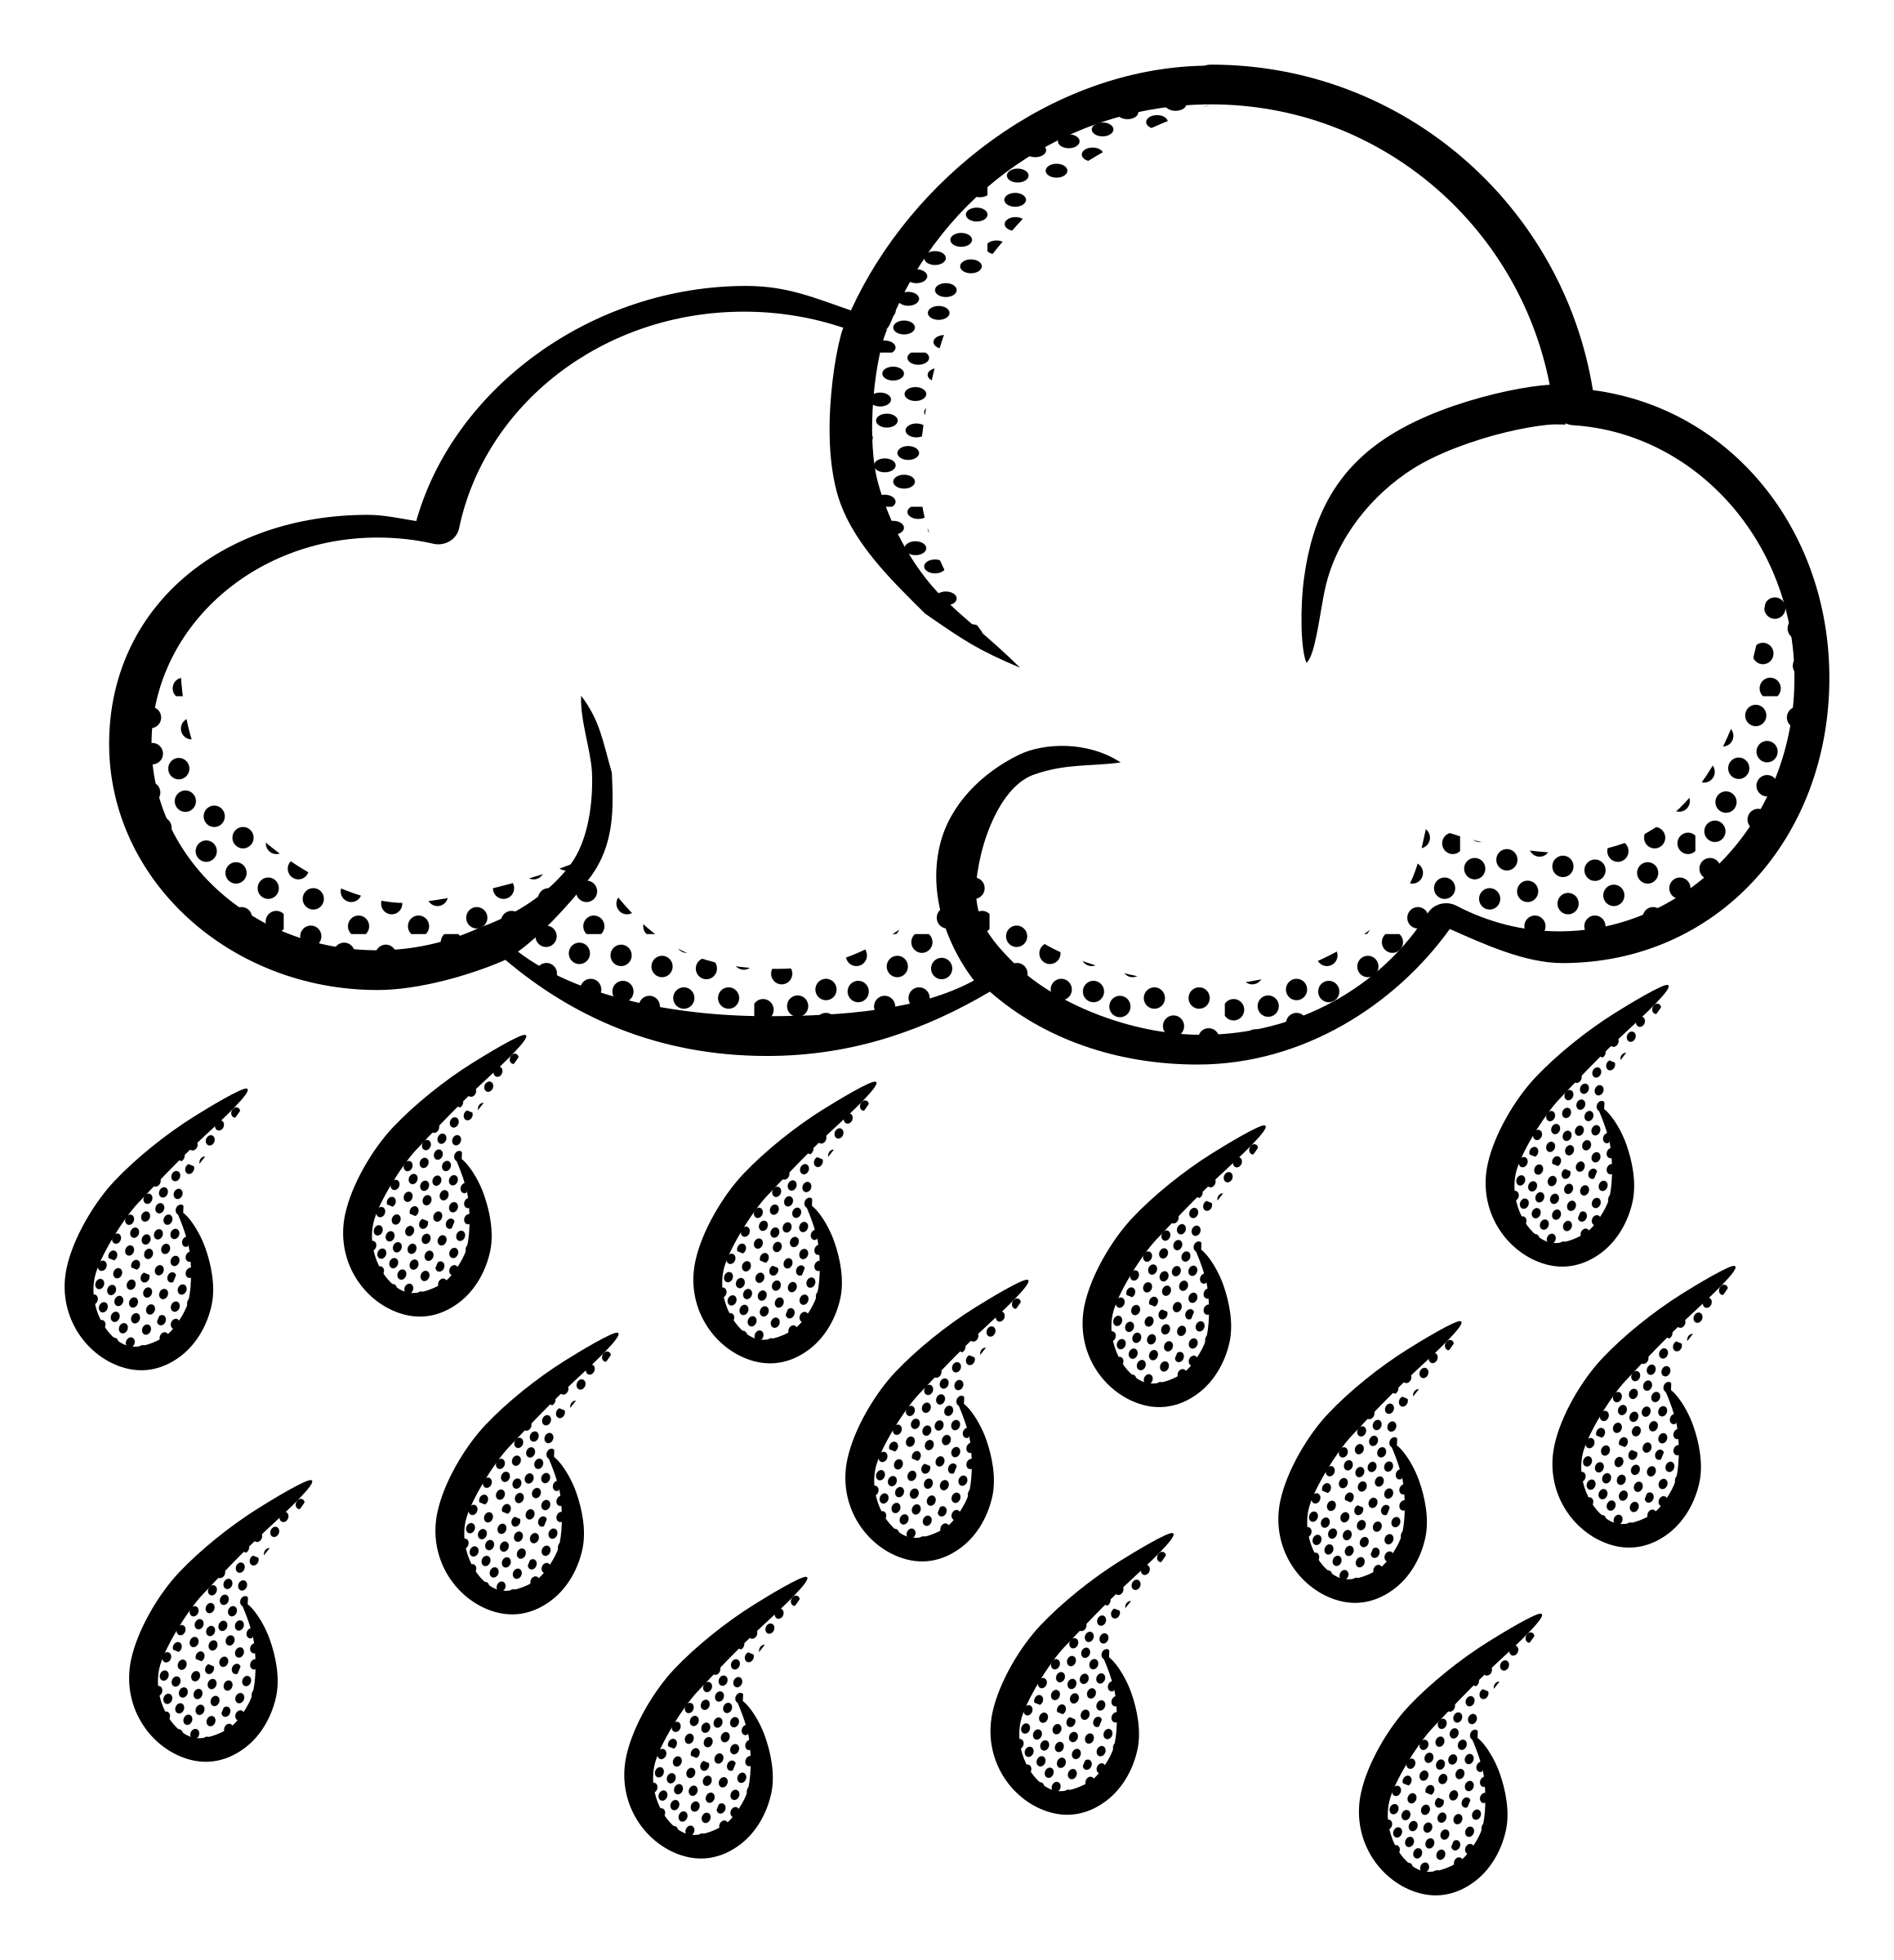 Rain cloud clipart black and white transparent stock Rain cloud rain clipart image a raincloud and rain - WikiClipArt transparent stock